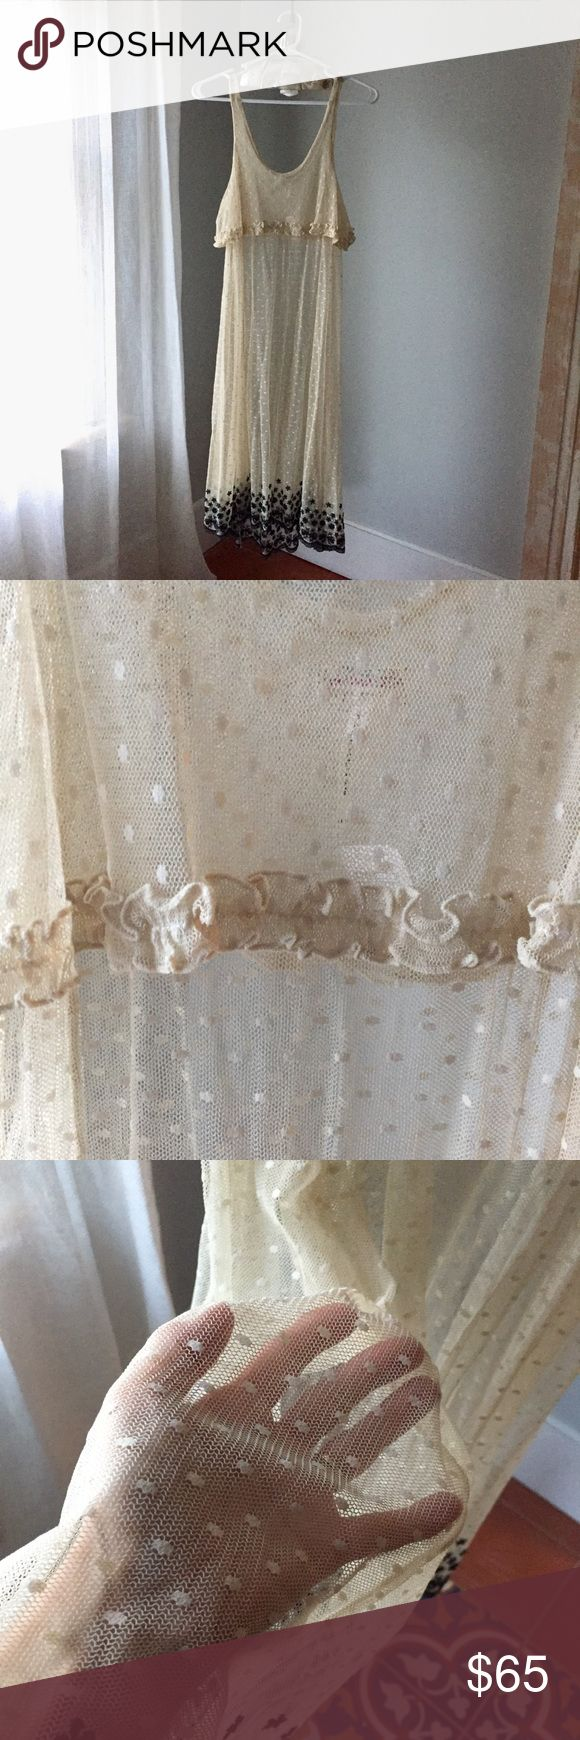 """Lovely Free People sheer lace dot dress Sheer ivory with gentle ruffle detail below chest and black floral pattern rising approximately 4"""" from bottom, 43"""" inches long from shoulder to base, back is approx 4"""" longer, gorgeous over a slip! Free People Dresses"""